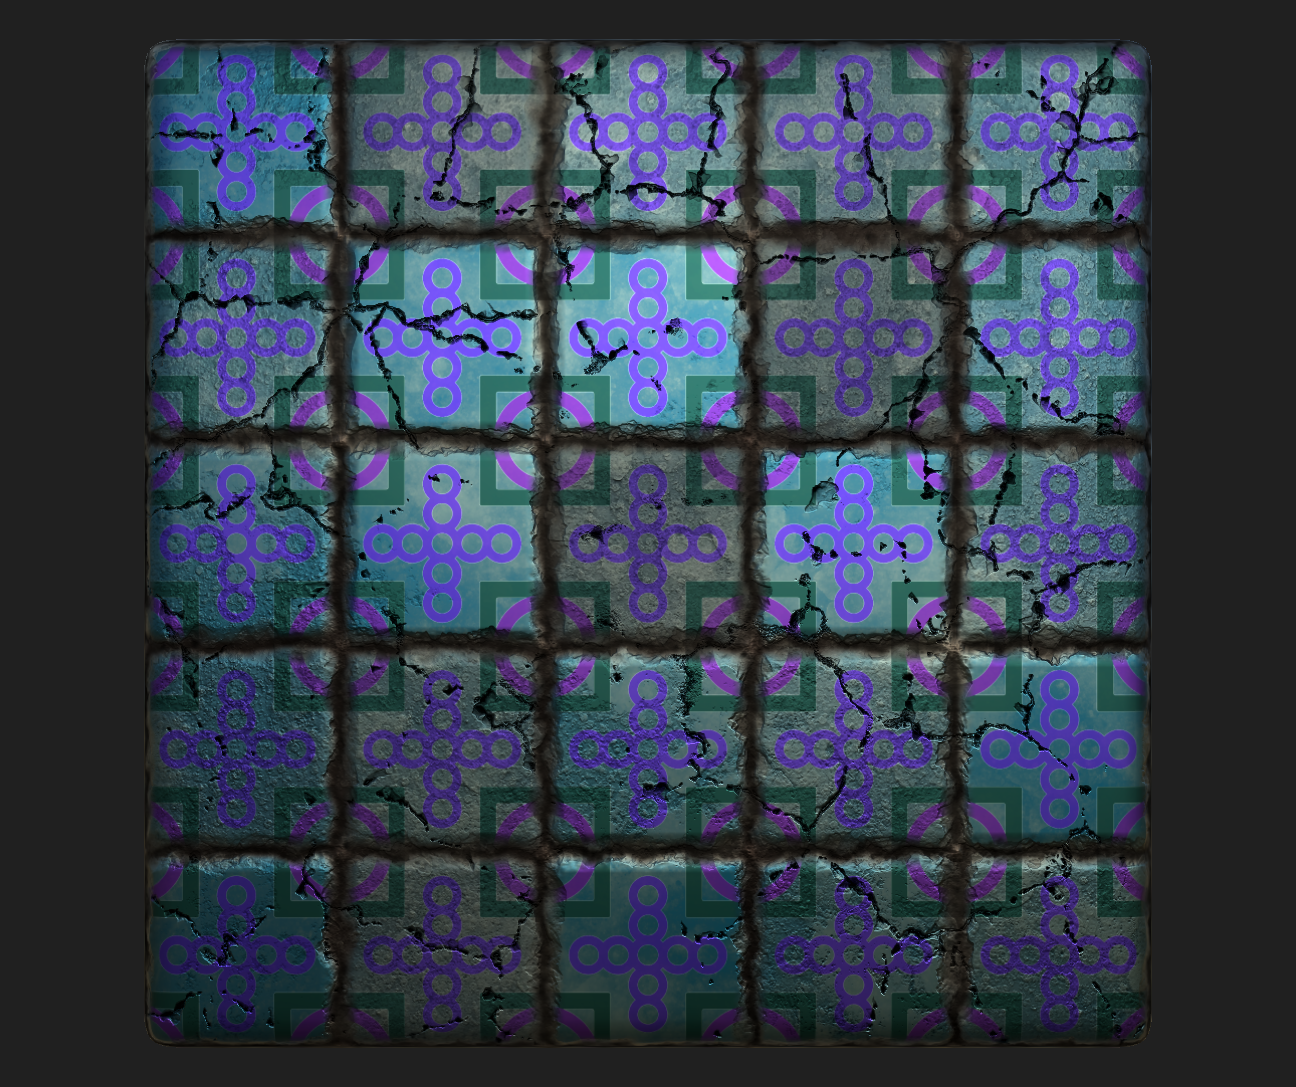 Tile_15_Pattern_09.png